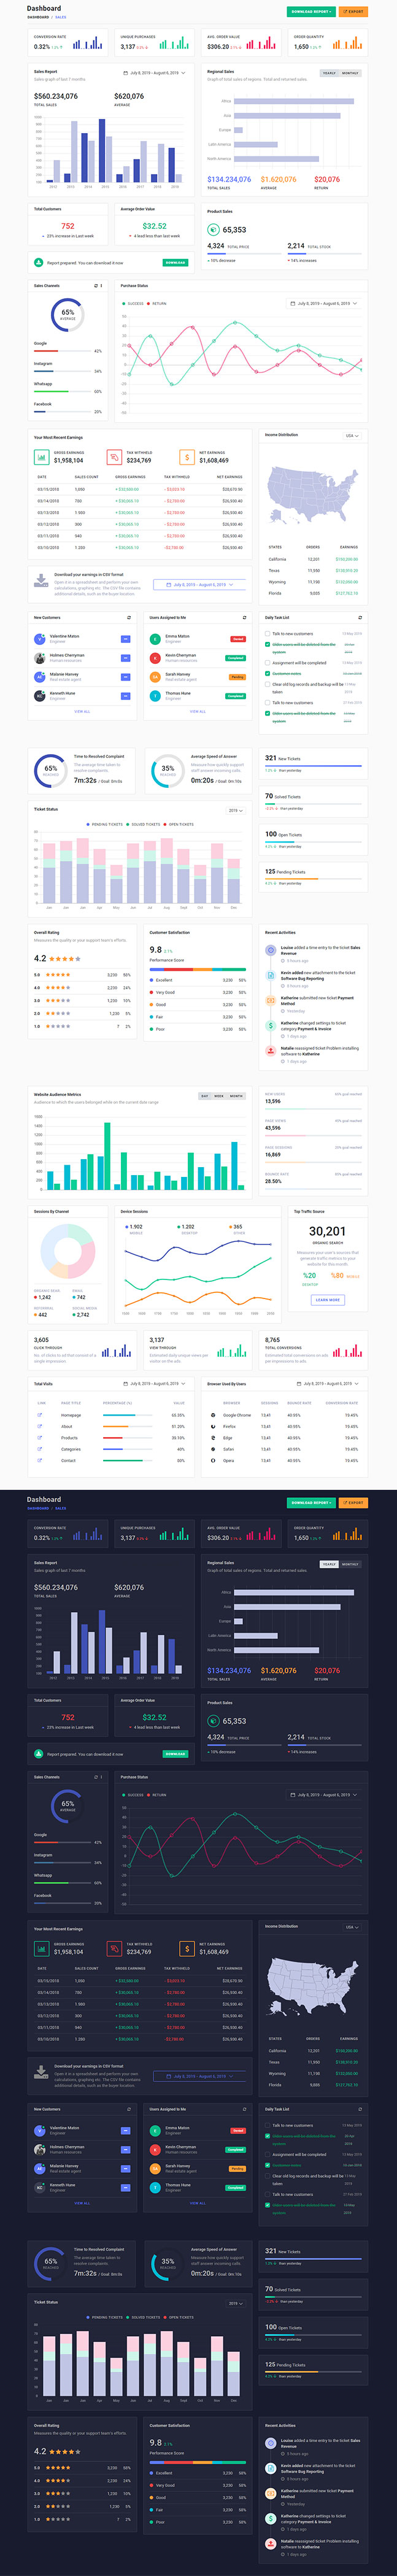 Borderless Responsive Admin Dashboard Template By